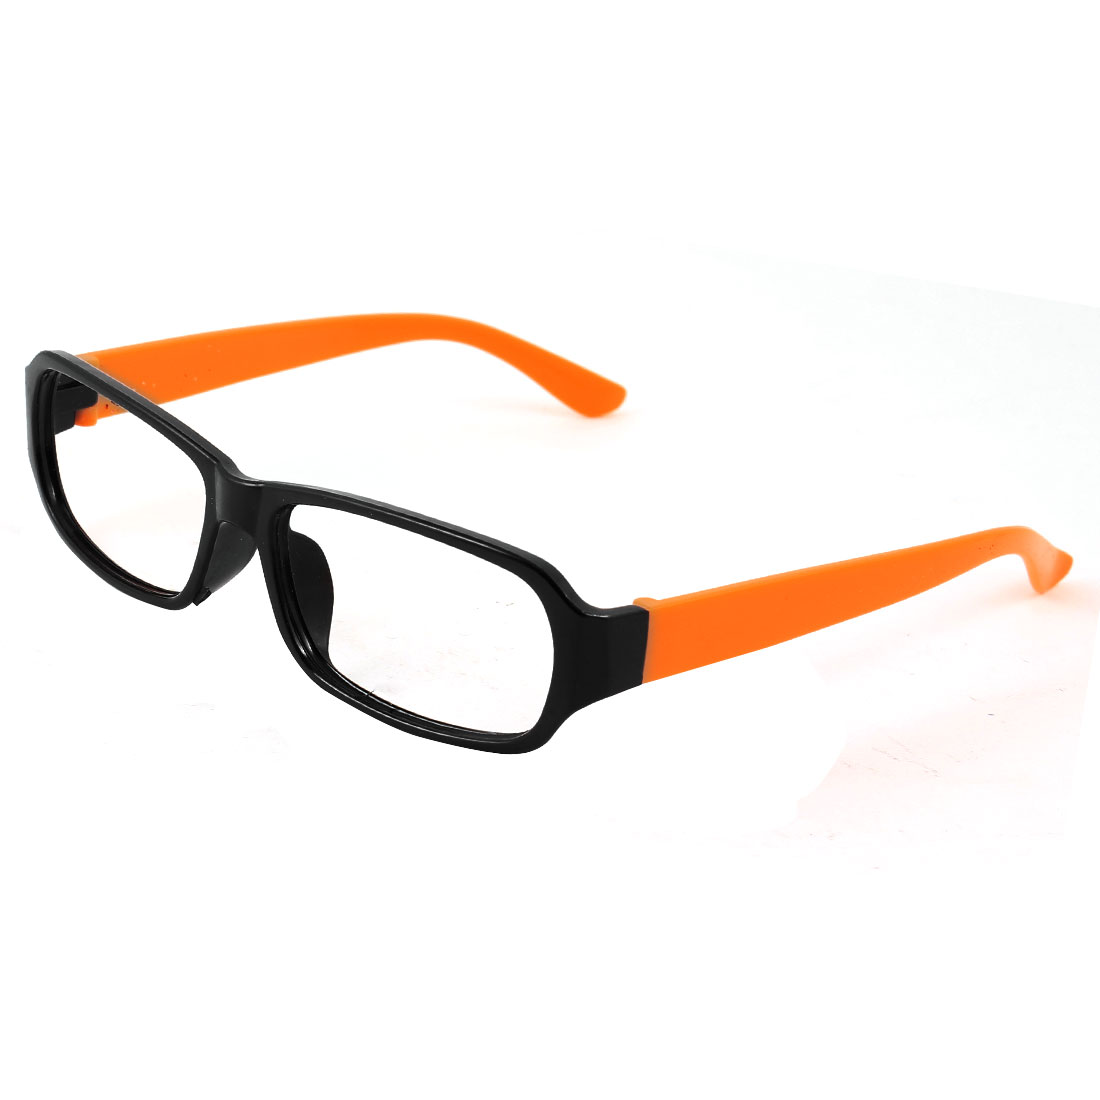 Black Orange Plastic Full Rim Rectangular Eyeglasses Frame for Ladies